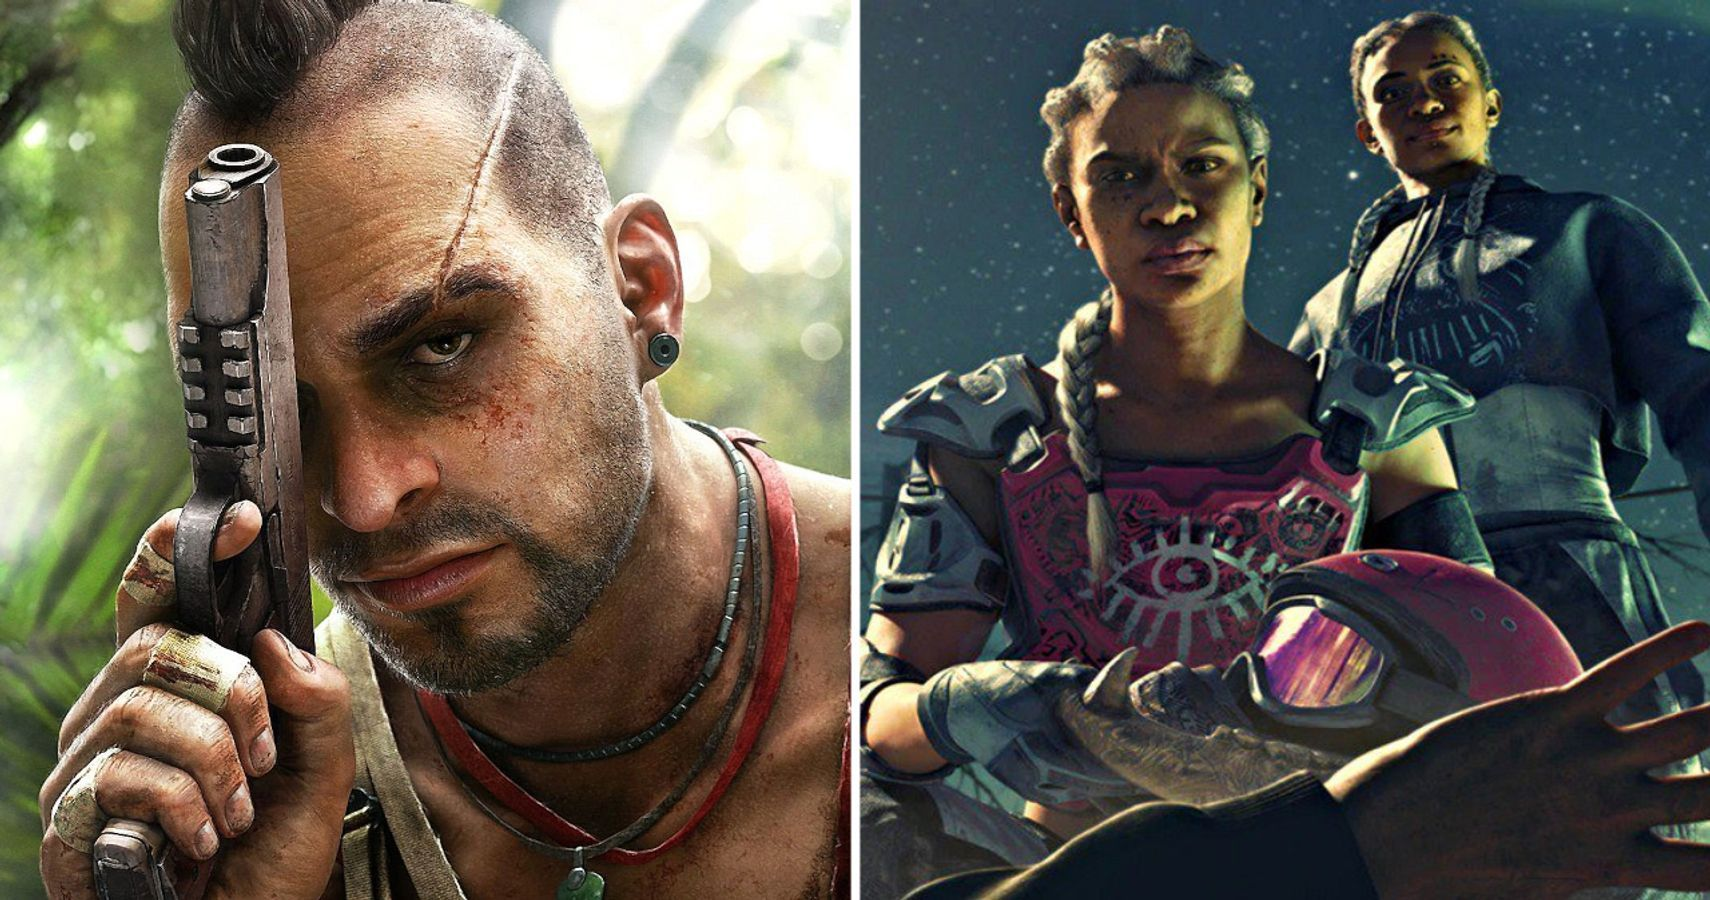 Far Cry Games Ranked Worst To Best According To Metacritic User